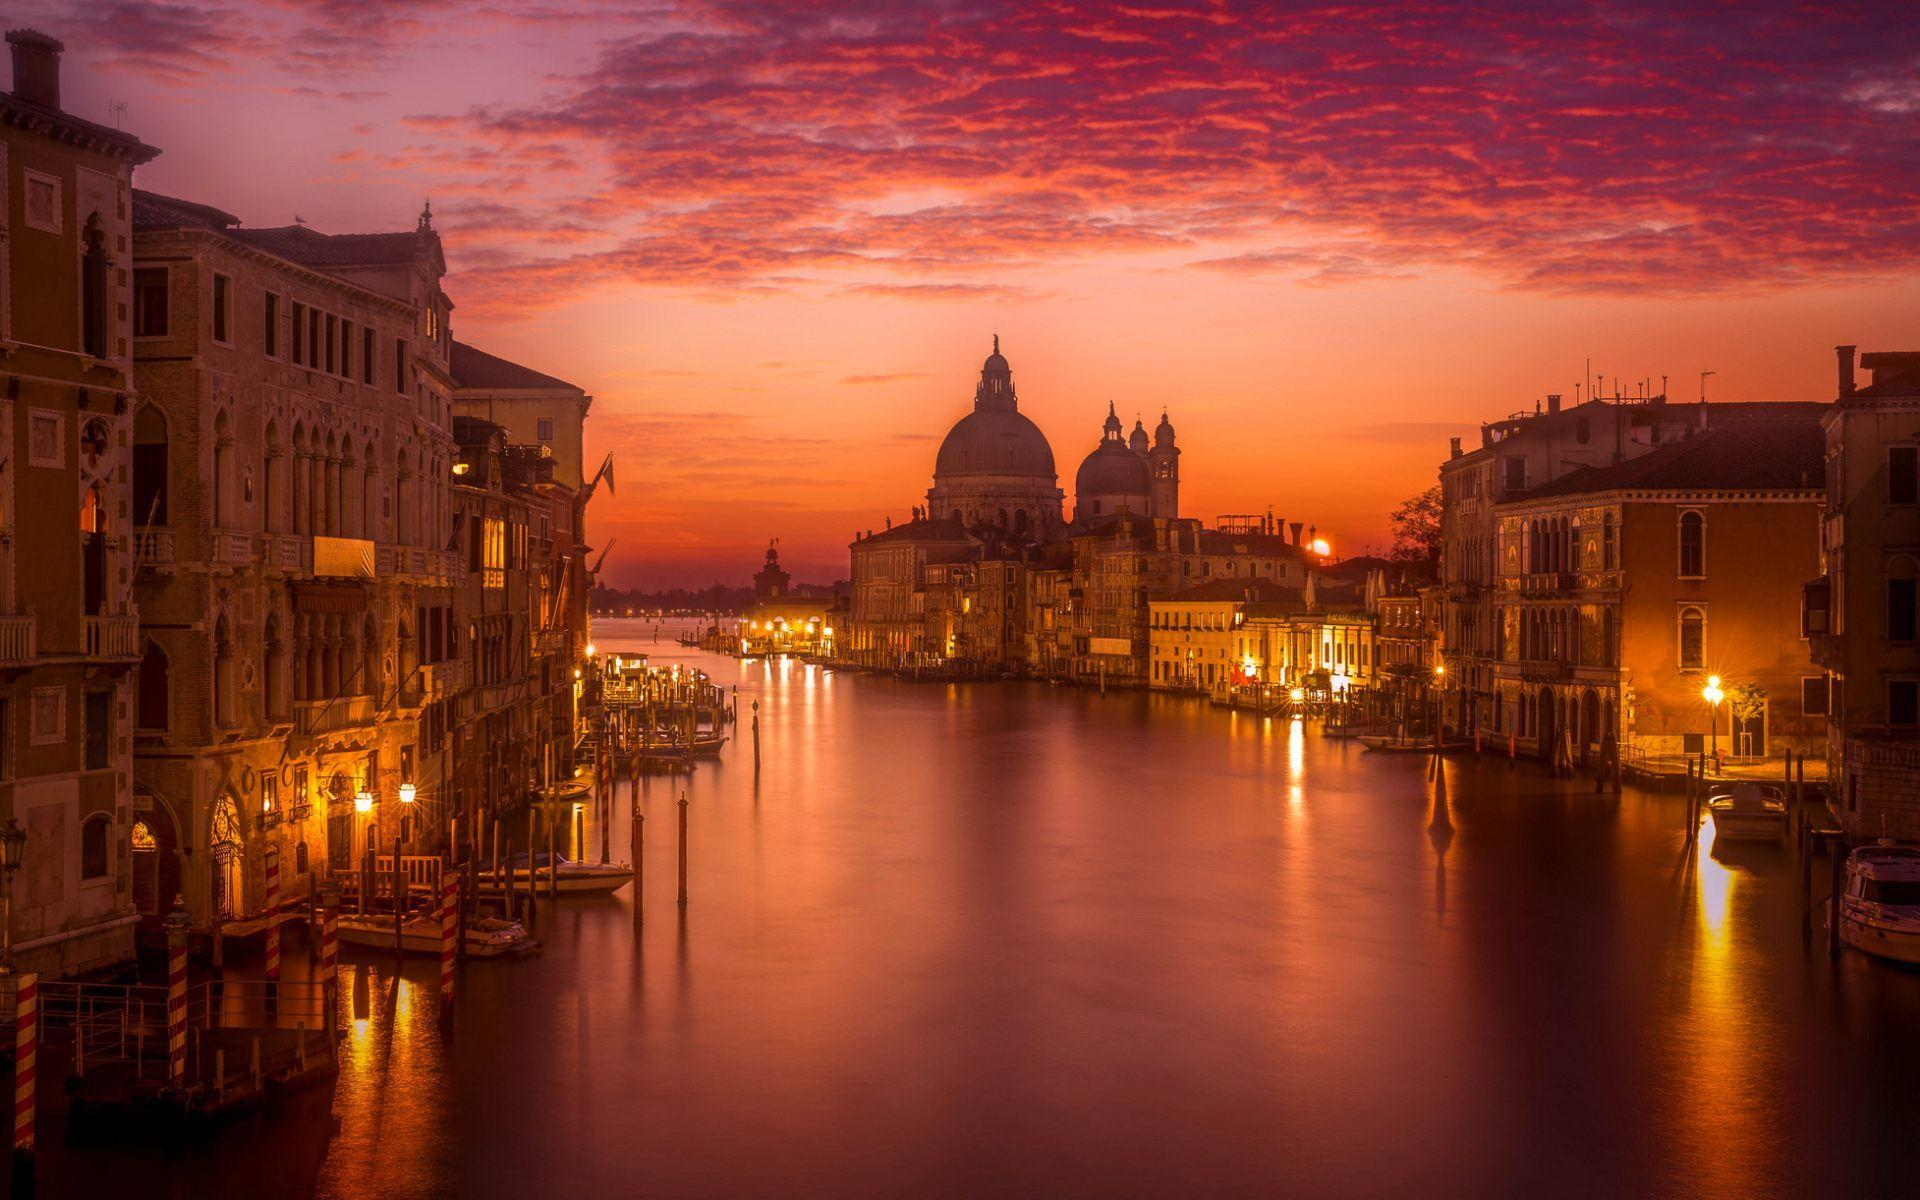 Venice Wallpaper Hd - (60+) Wallpaper Collections